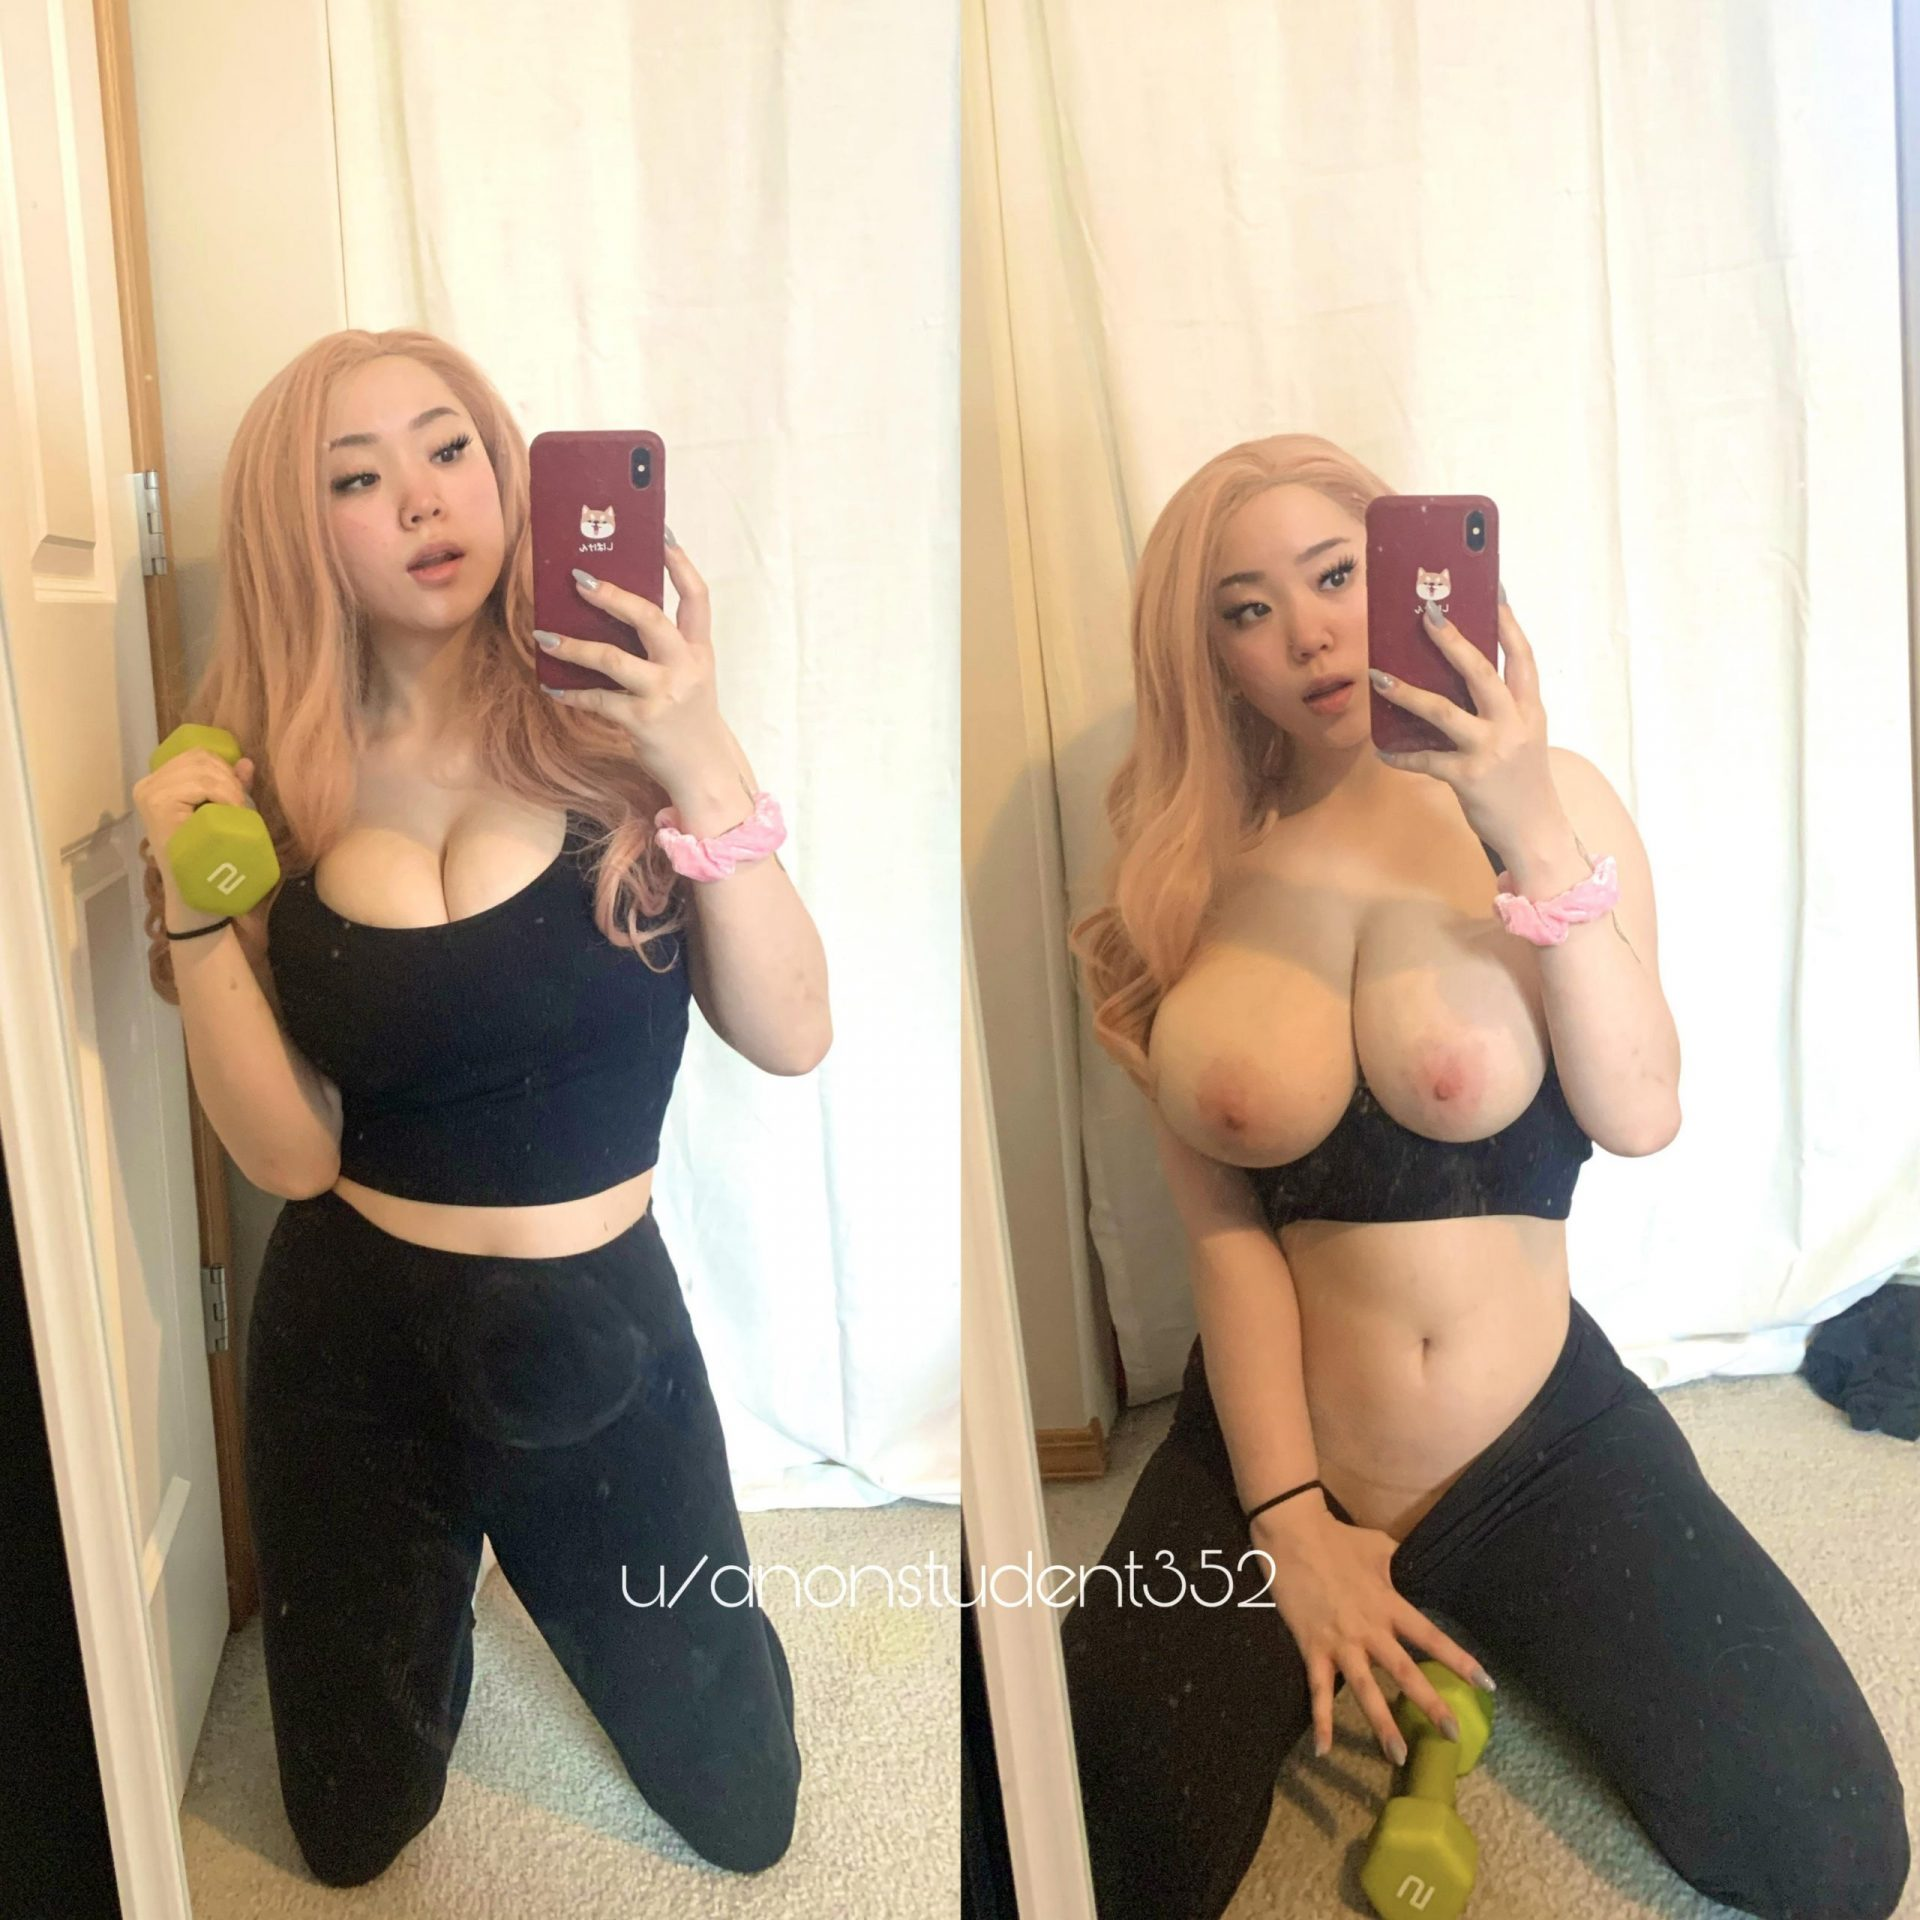 What would you do to me if you saw me at the gym?